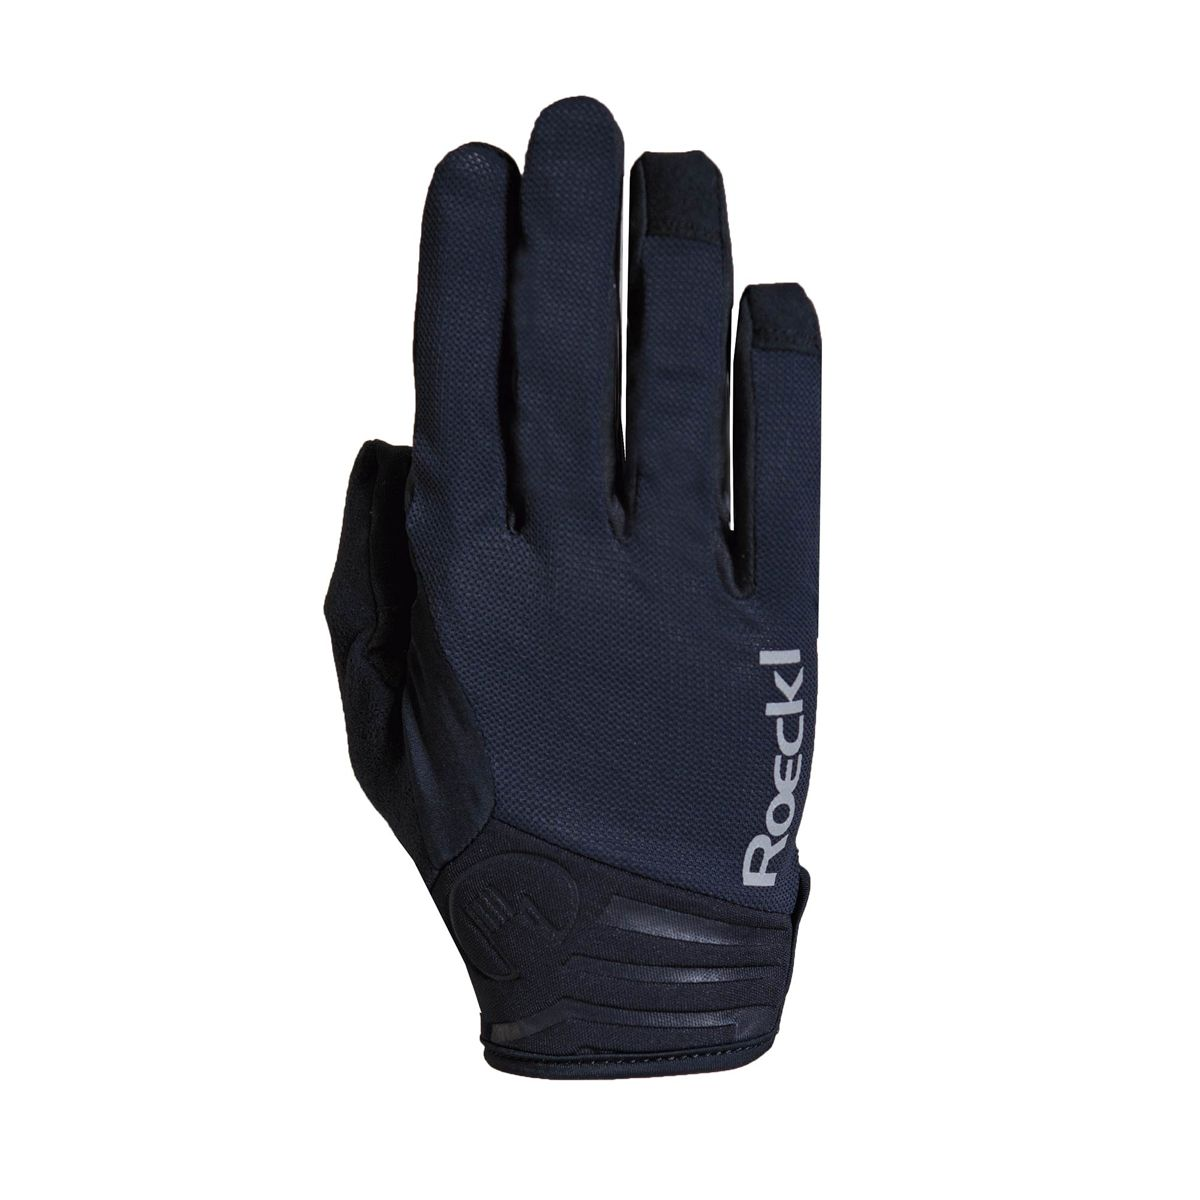 MILEO gloves